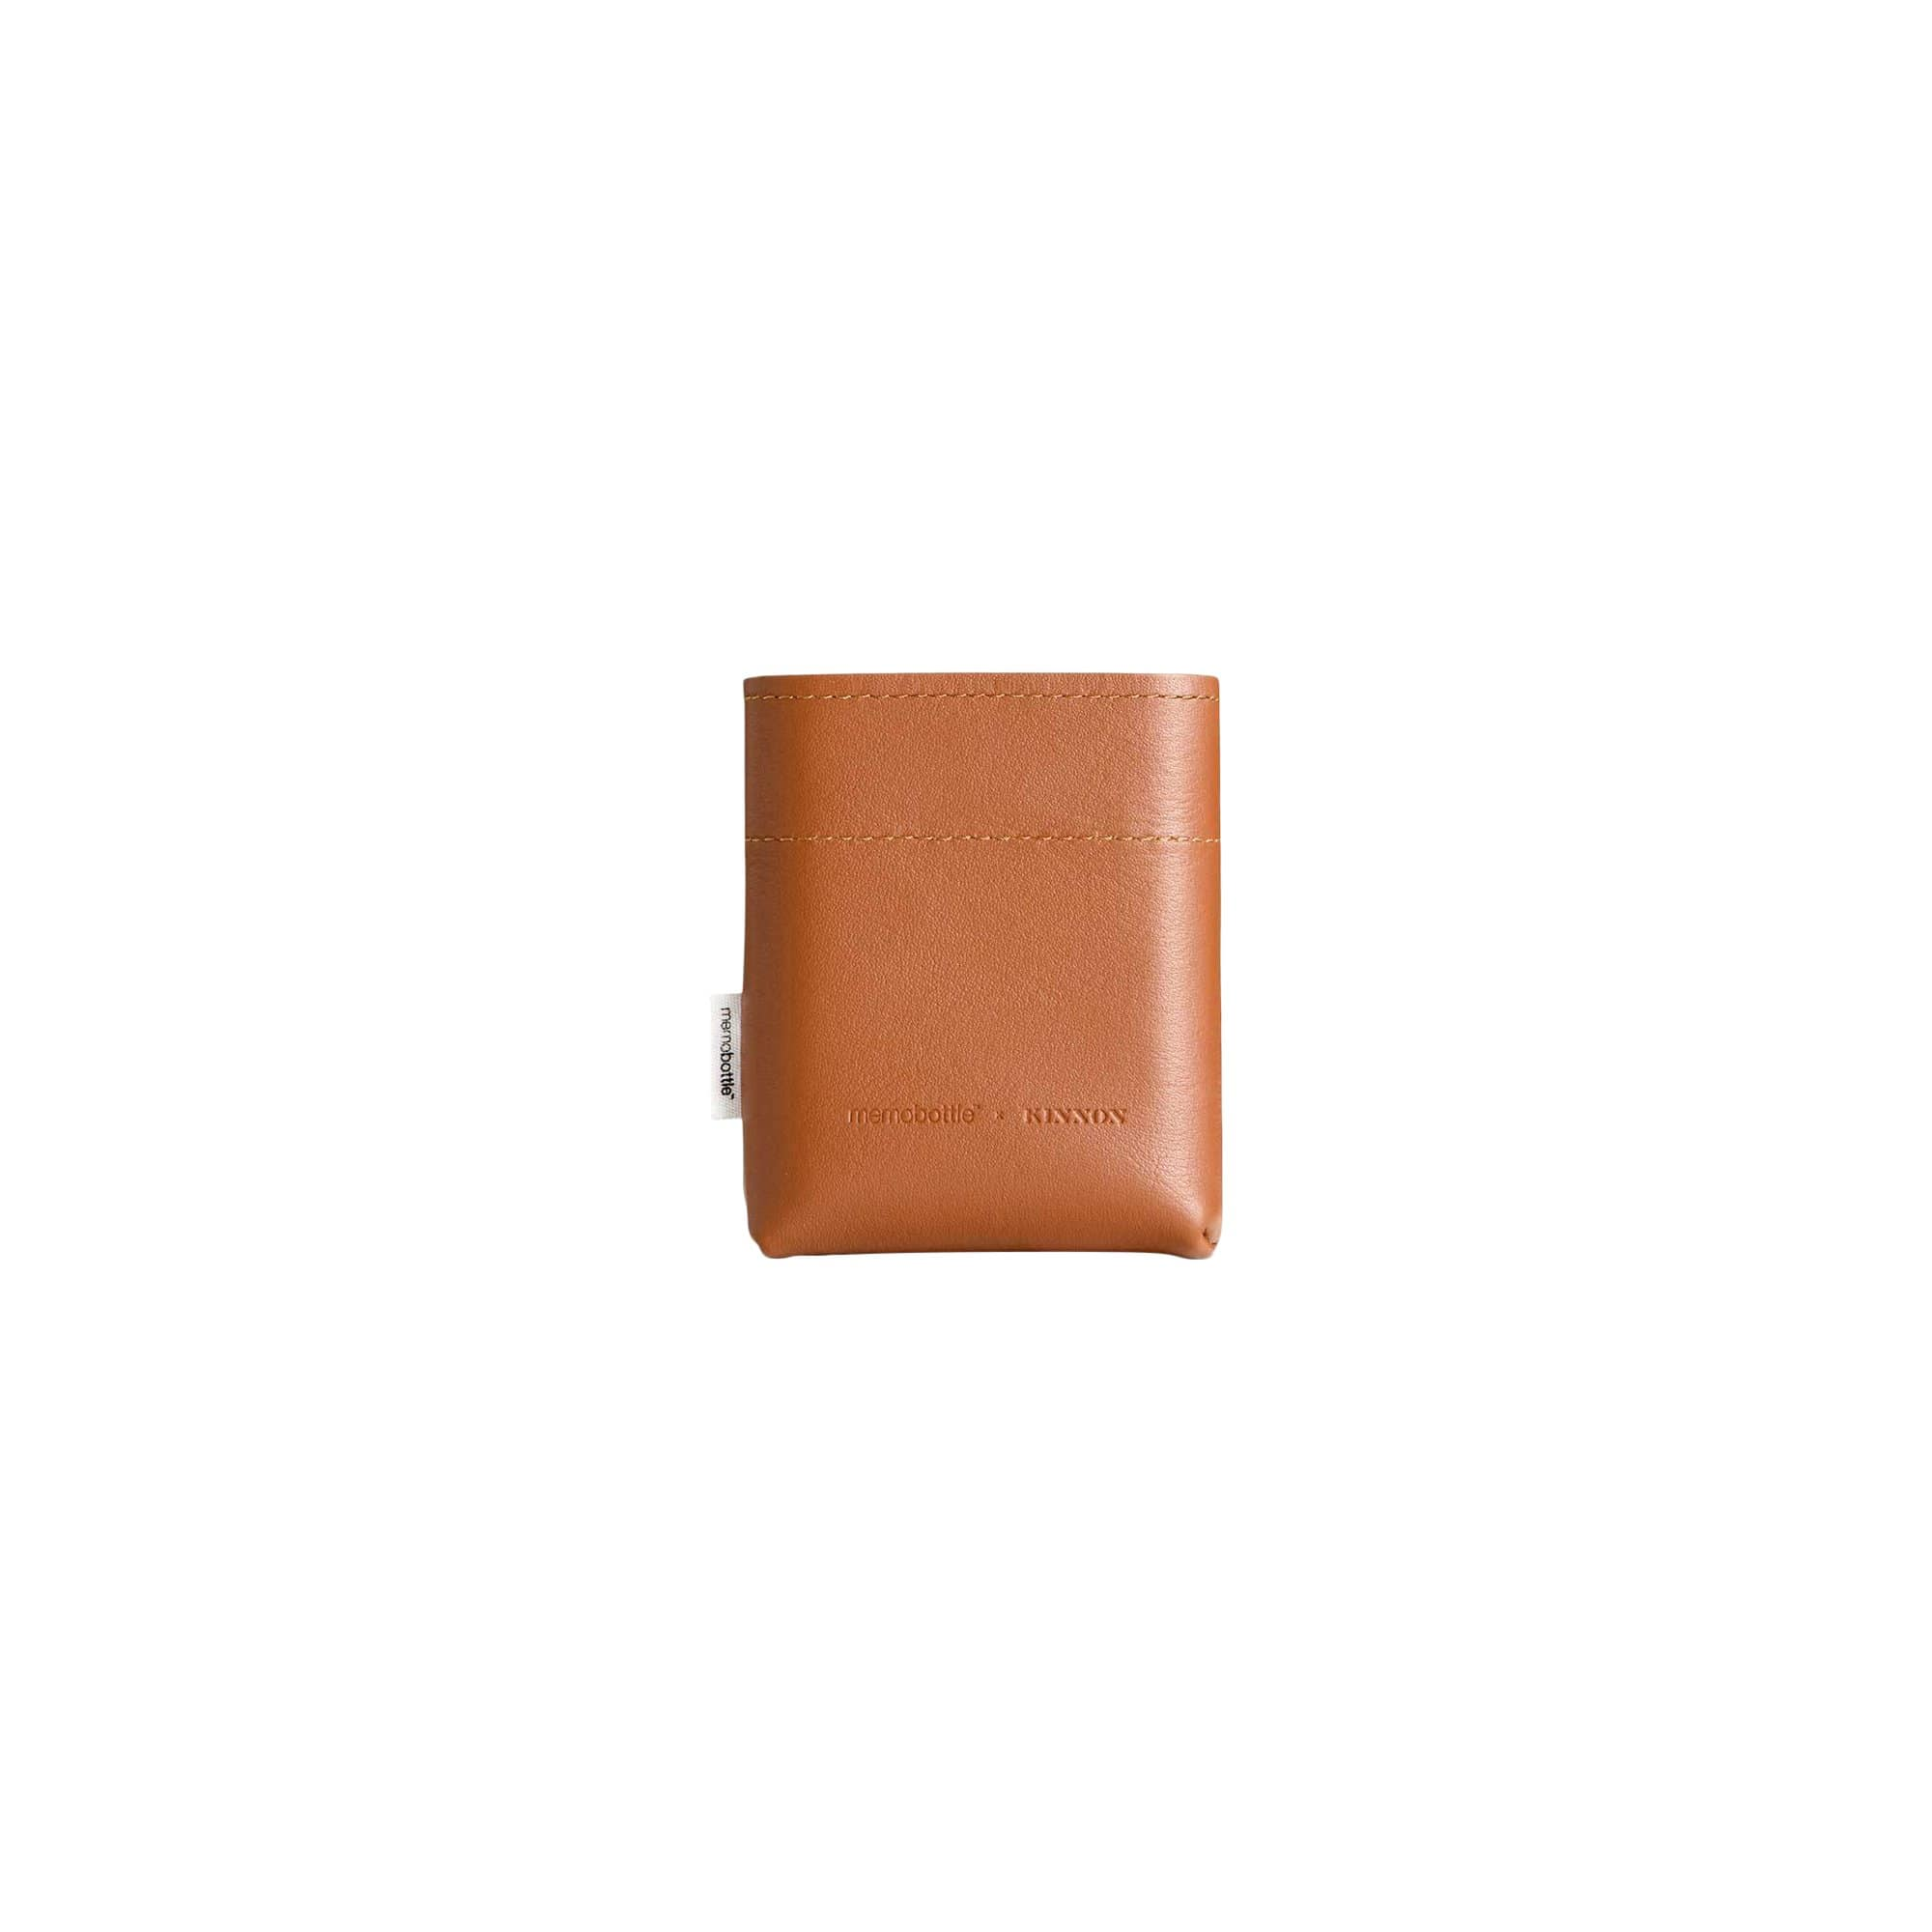 A7 Tan Leather Sleeve